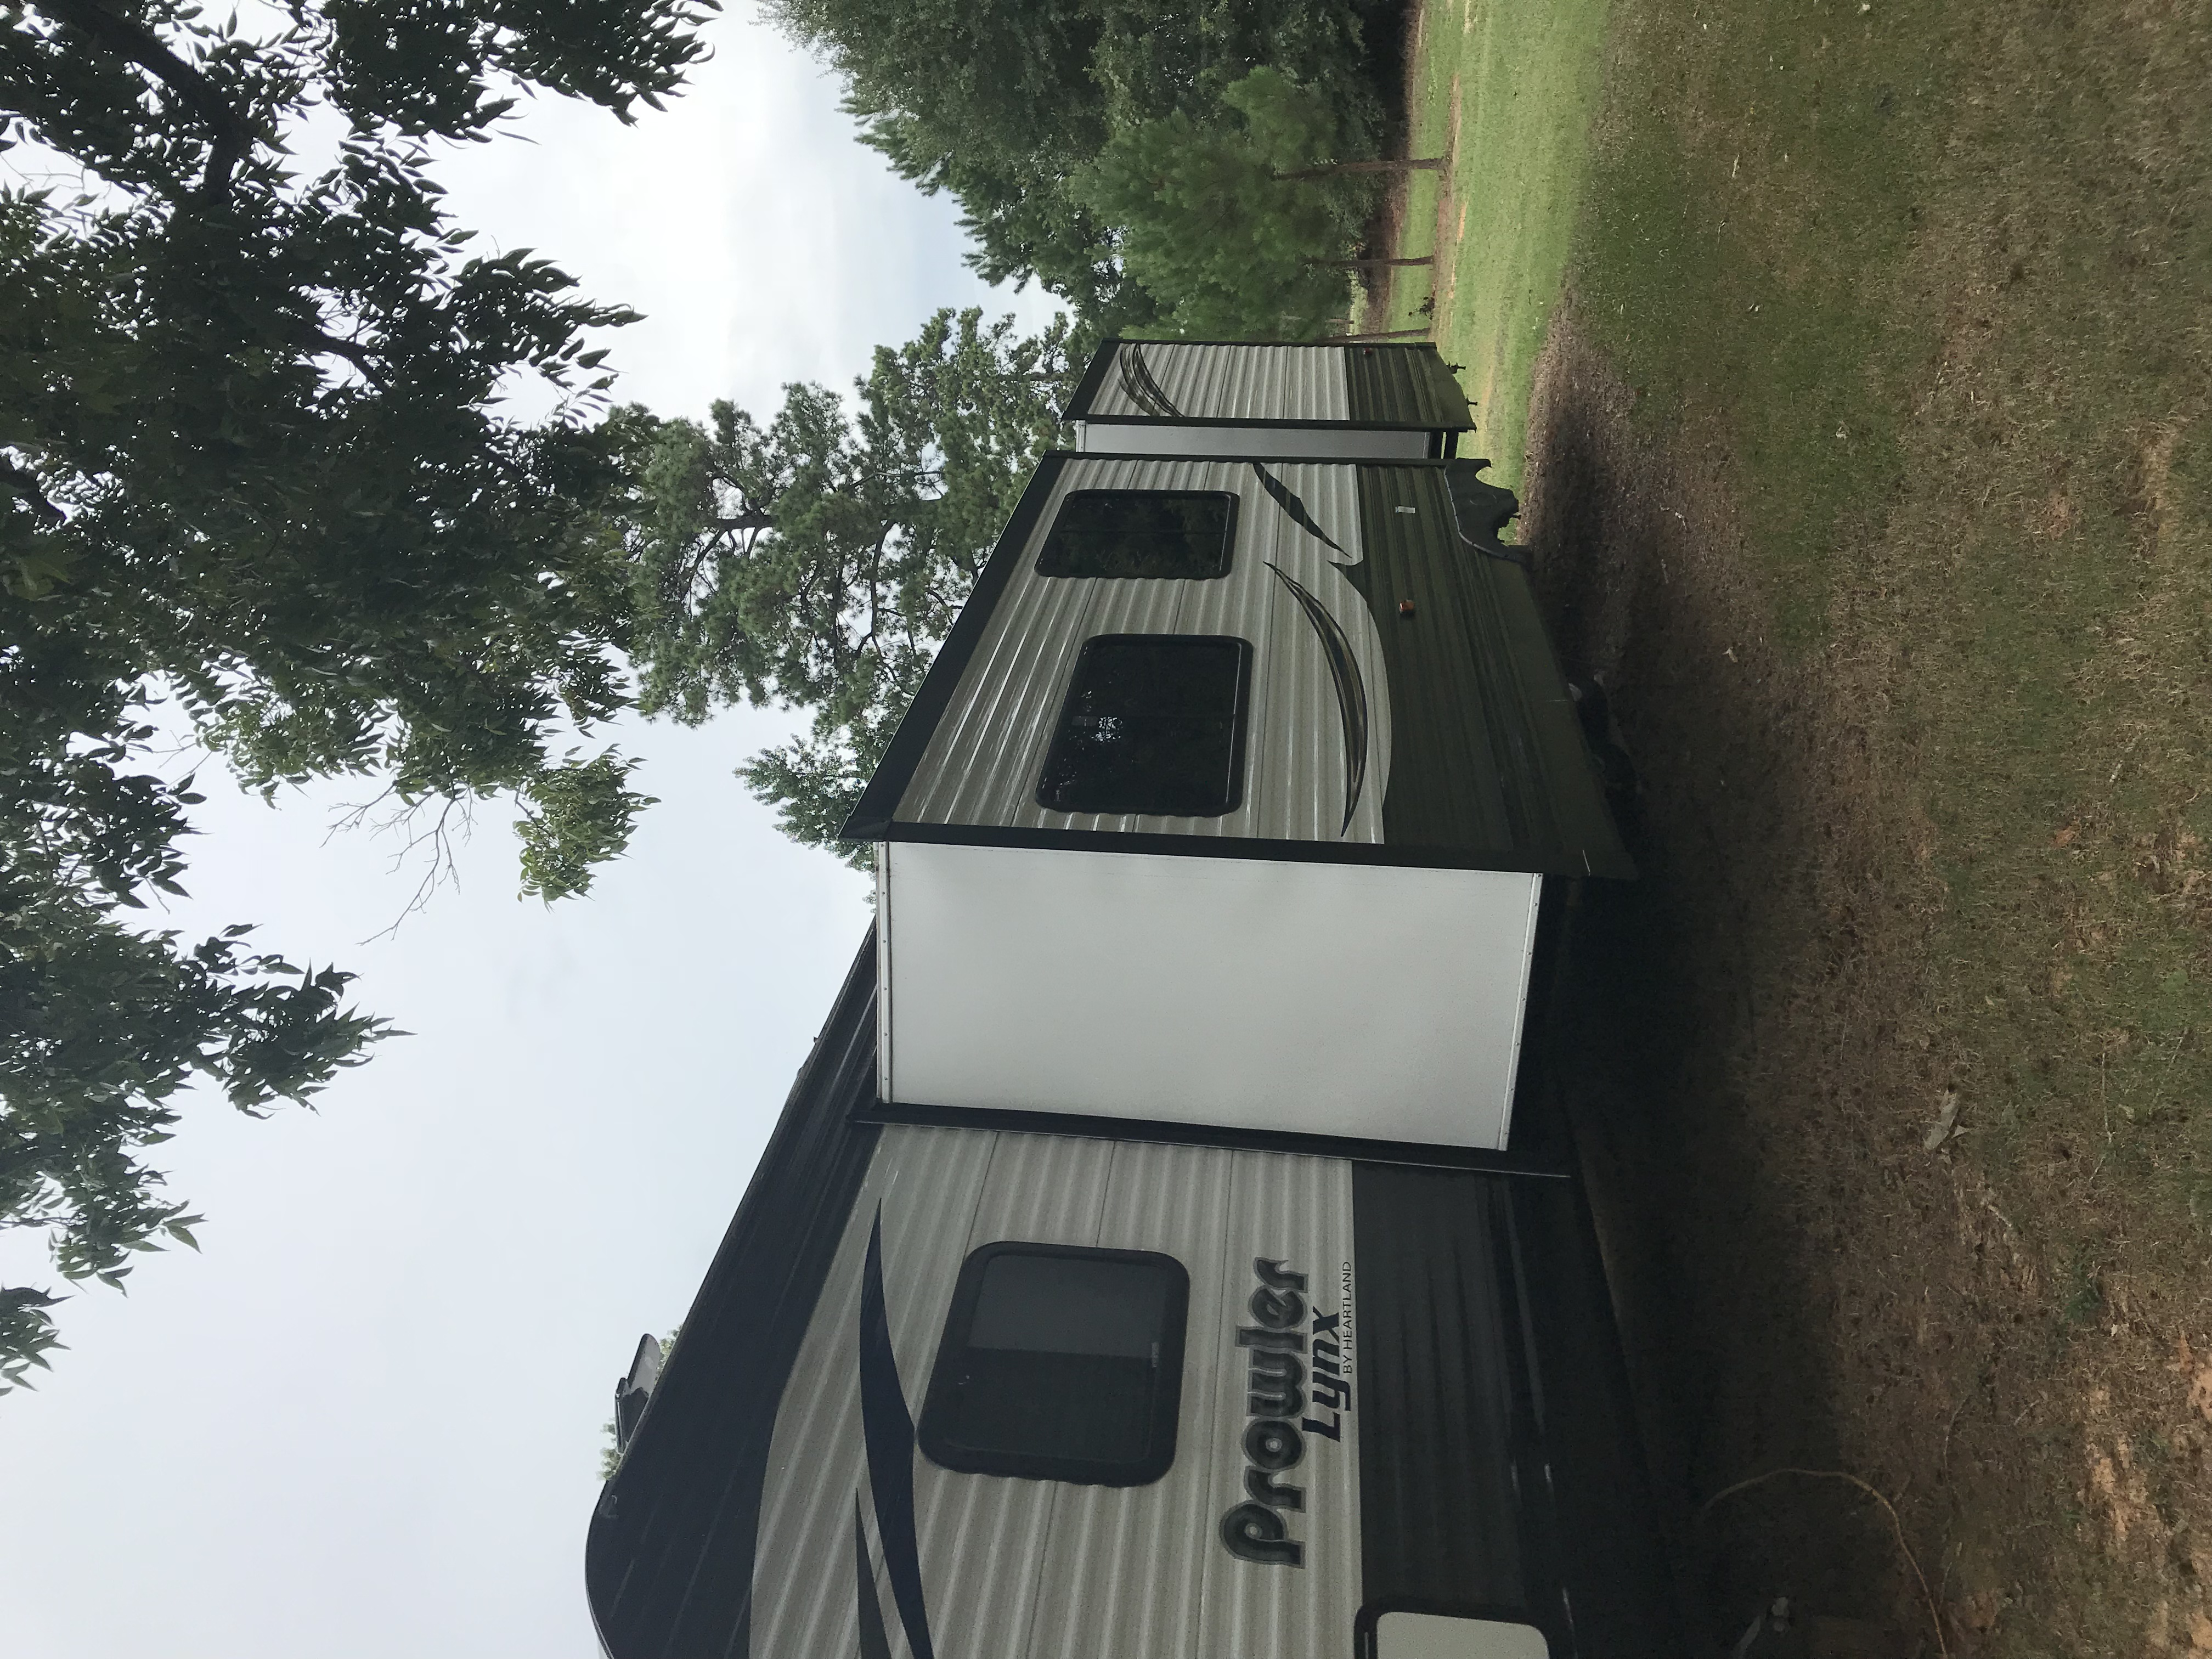 2 slide outs main living and bunk room. Heartland Prowlerlynx 2017